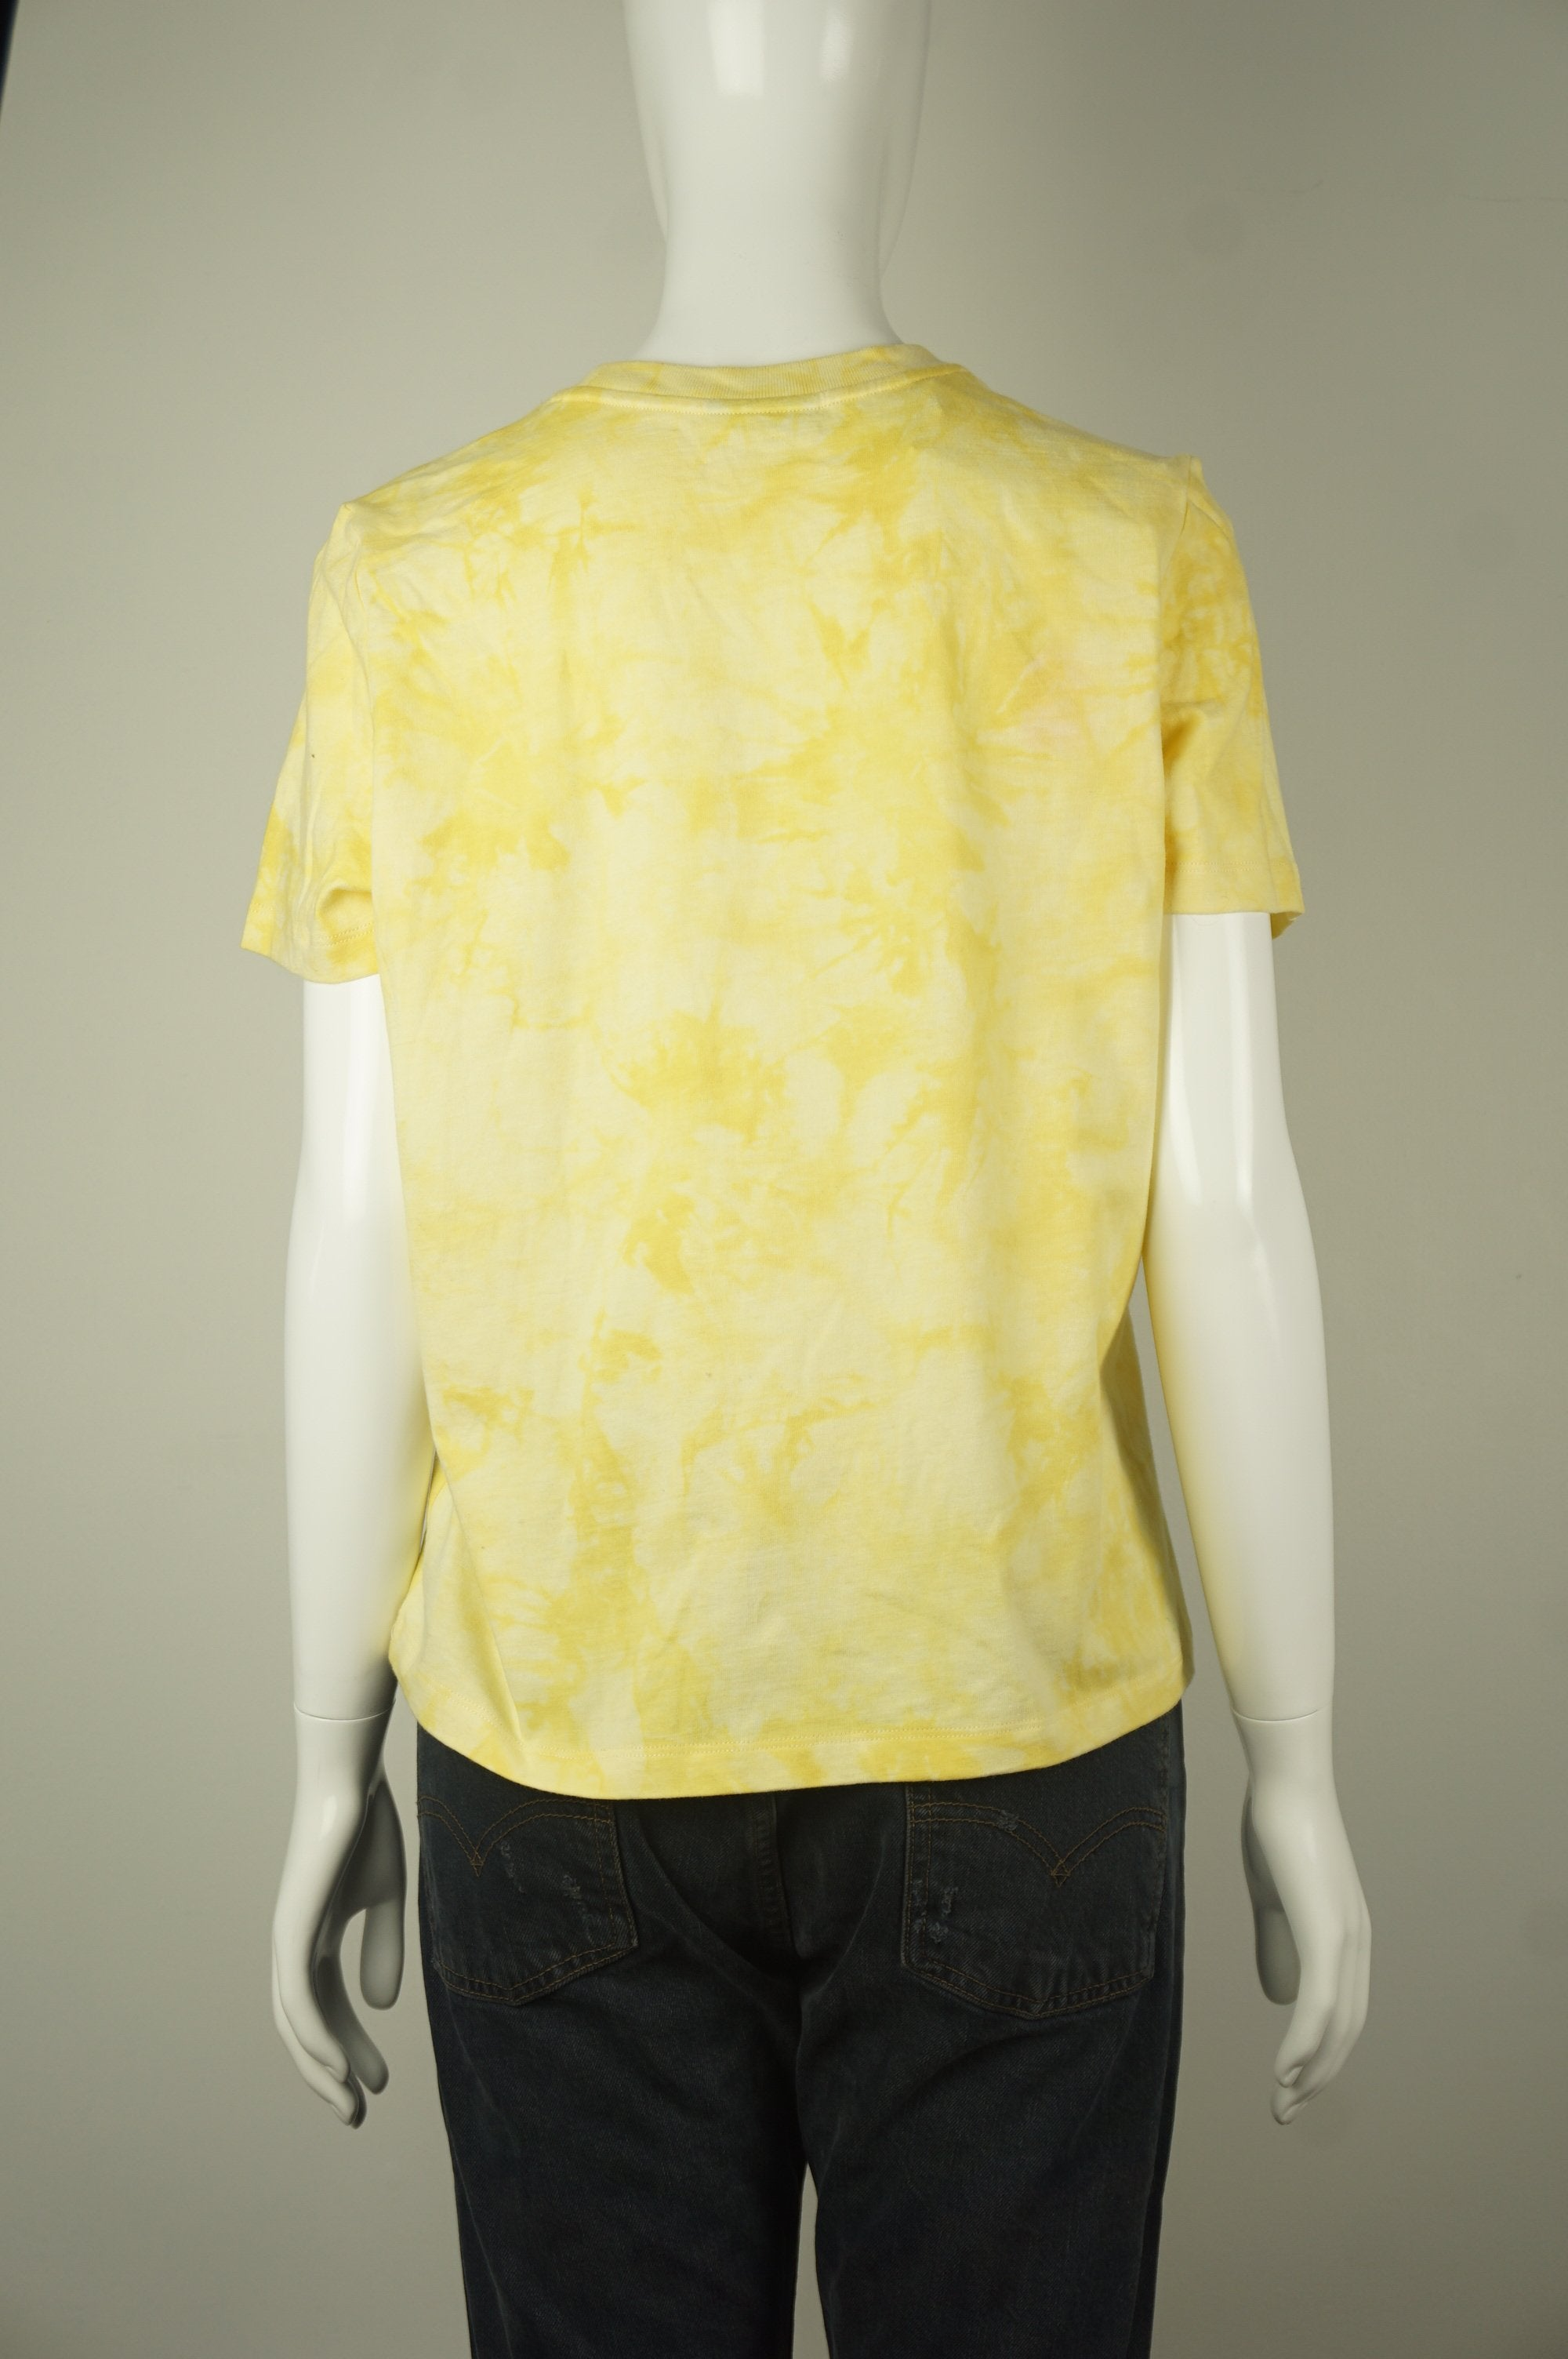 Frank and Oak Hippie's 60s-inspired tie-die yellow short sleeves shirt, What hippies got right, absolutely, in all occasions? Tie-die shirts, of course! This 60s-inspired statement piece is short-sleeved with crewneck, dropped shoulders, and a tie-die design. , Yellow, 100% Cotton. Comfortable and Breathable Fabric. ,